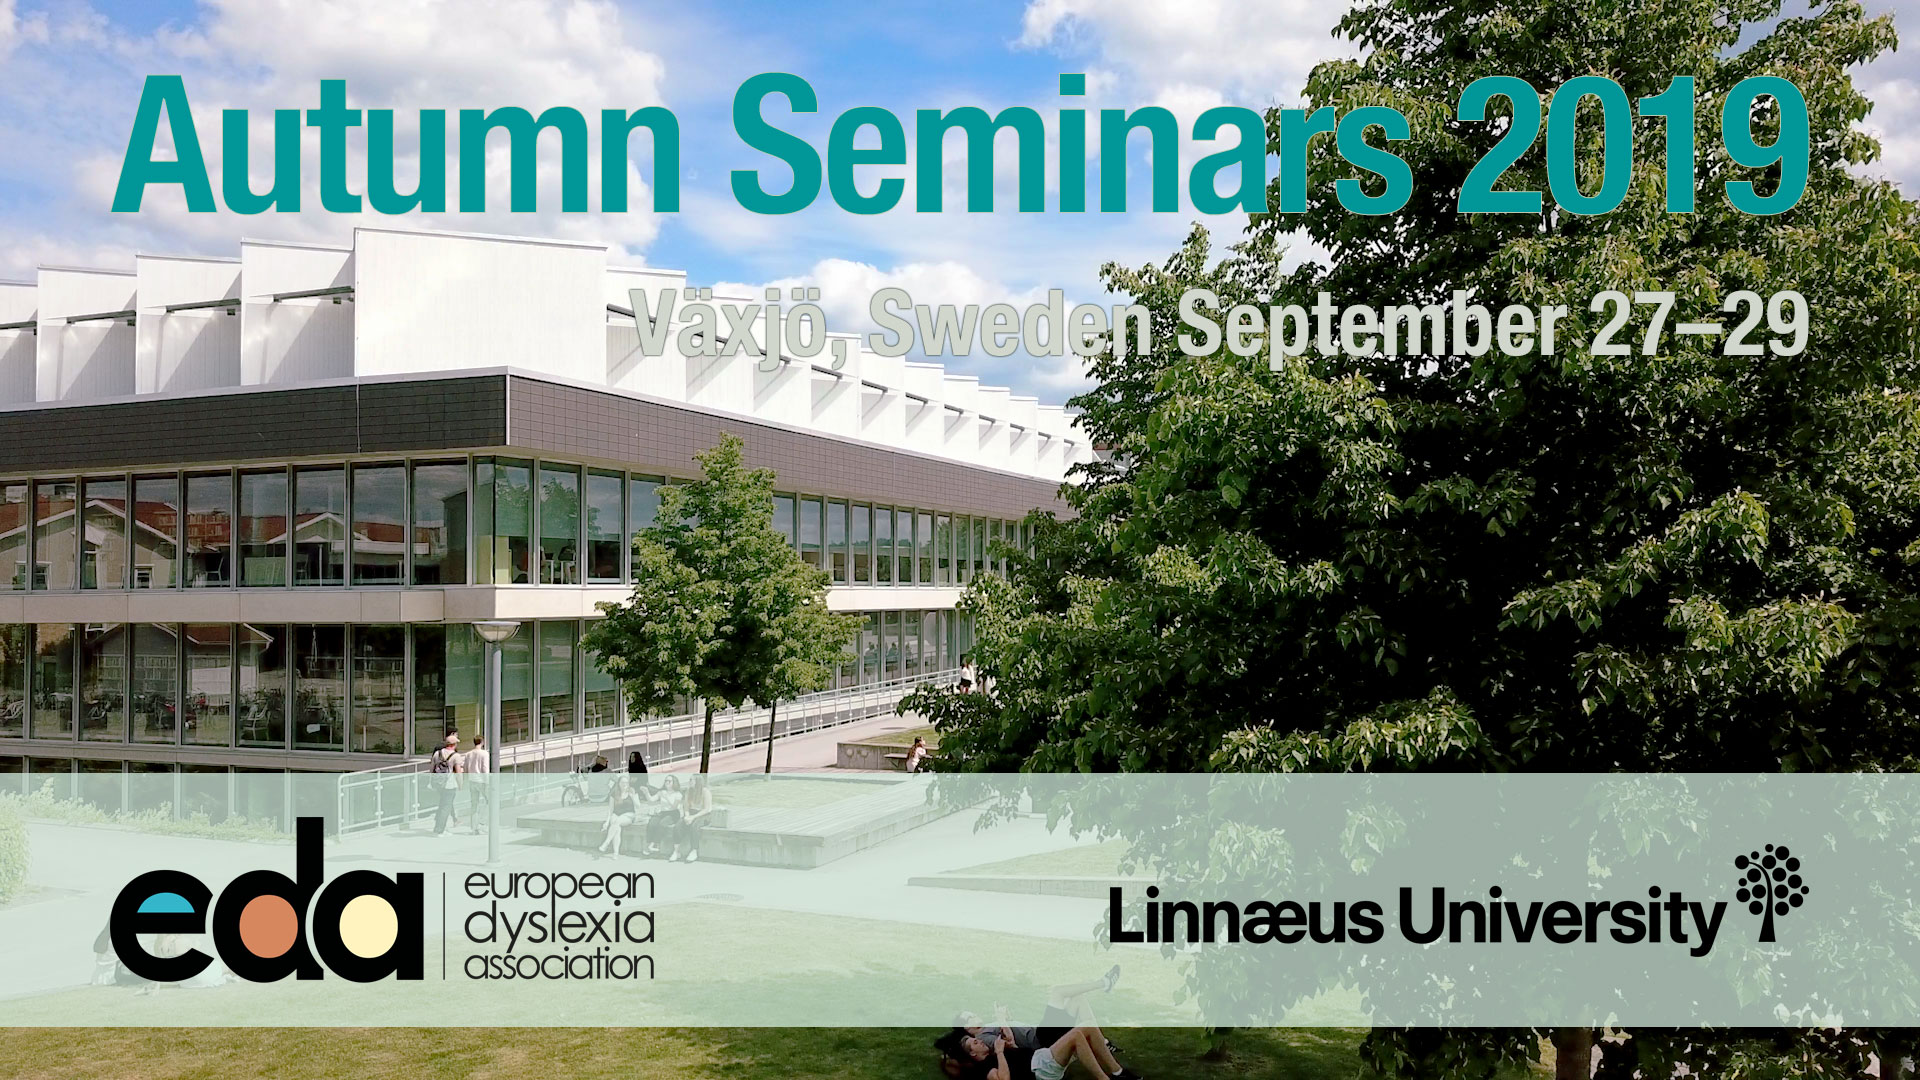 The logo image of the Autumn Seminars, showing the University library.